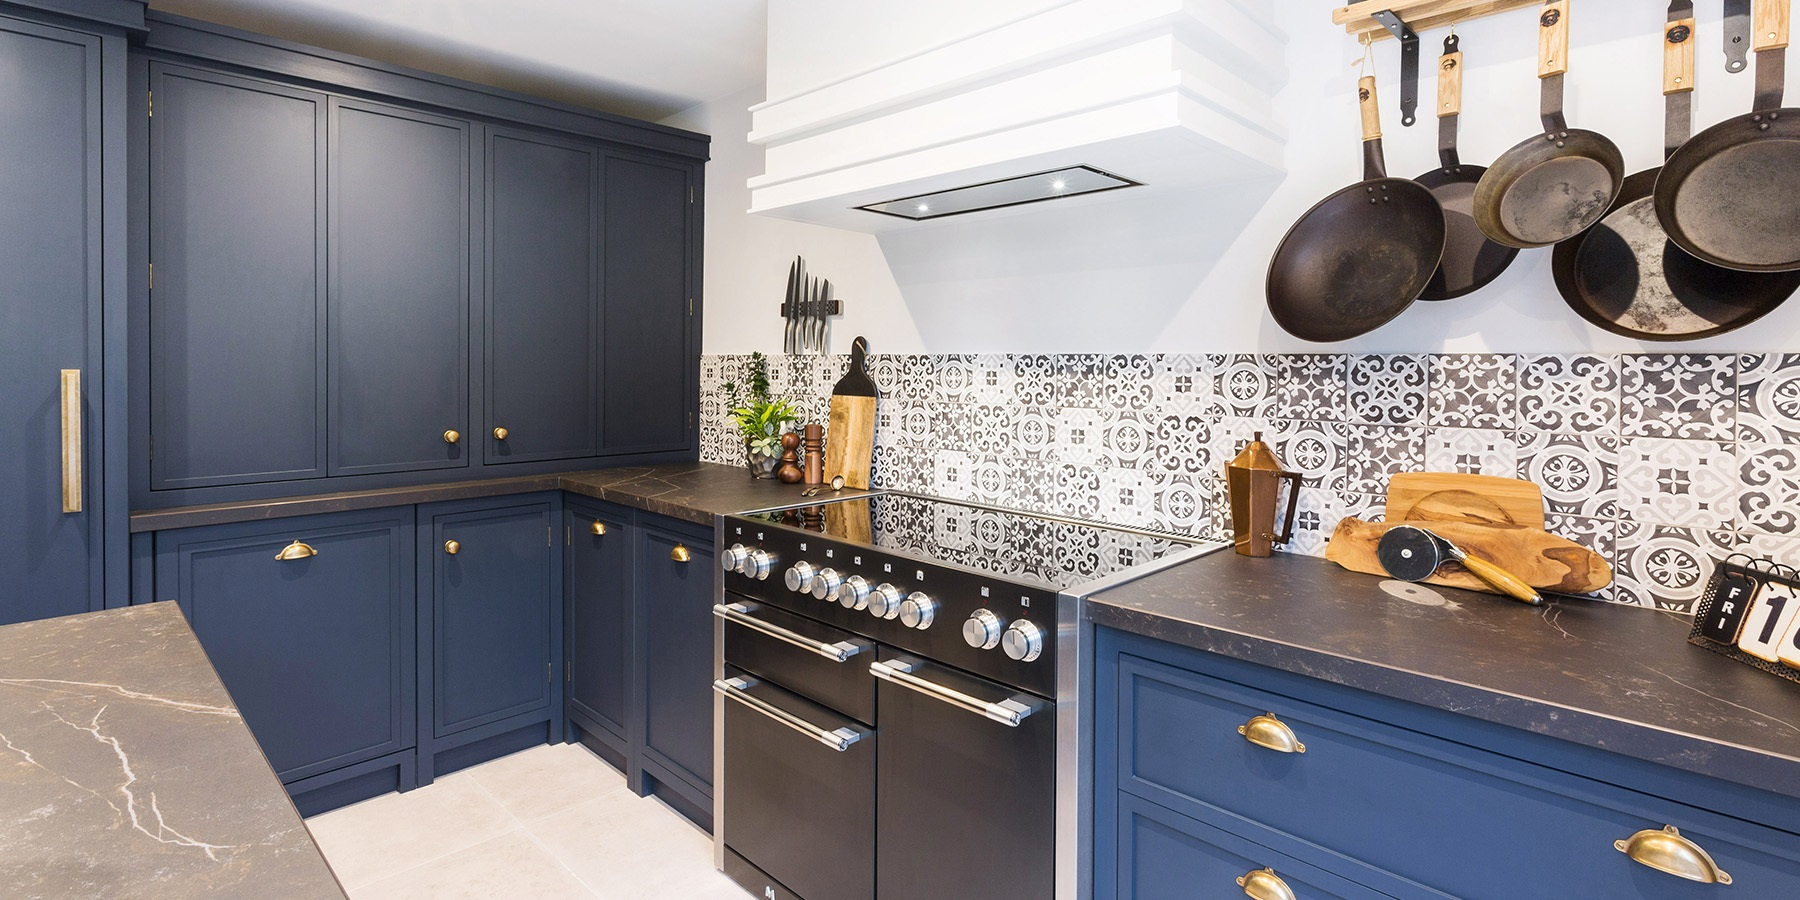 Industrial Navy Blue Shaker Kitchen - Burlanes Decolane kitchen in Navy, with Dekton worktops and Mercury range.